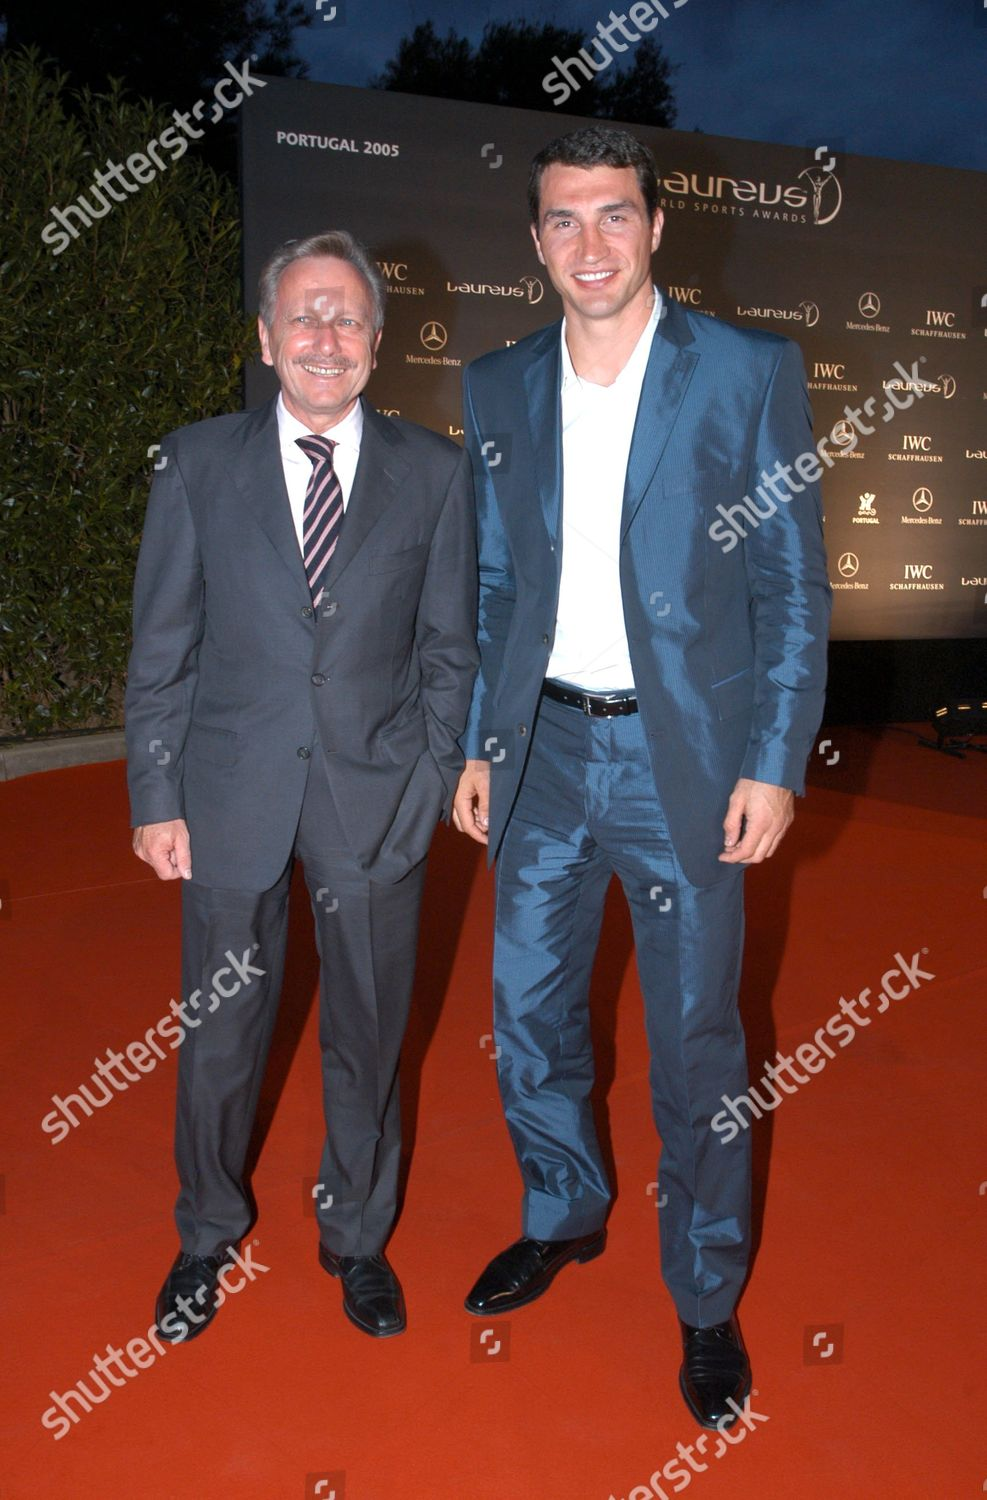 Stock photo of THE LAUREUS WORLD SPORTS AWARDS VOGUE PARTY, FAROL DESIGN HOTEL, CASAIS, PORTUGAL -  15 MAY 2005